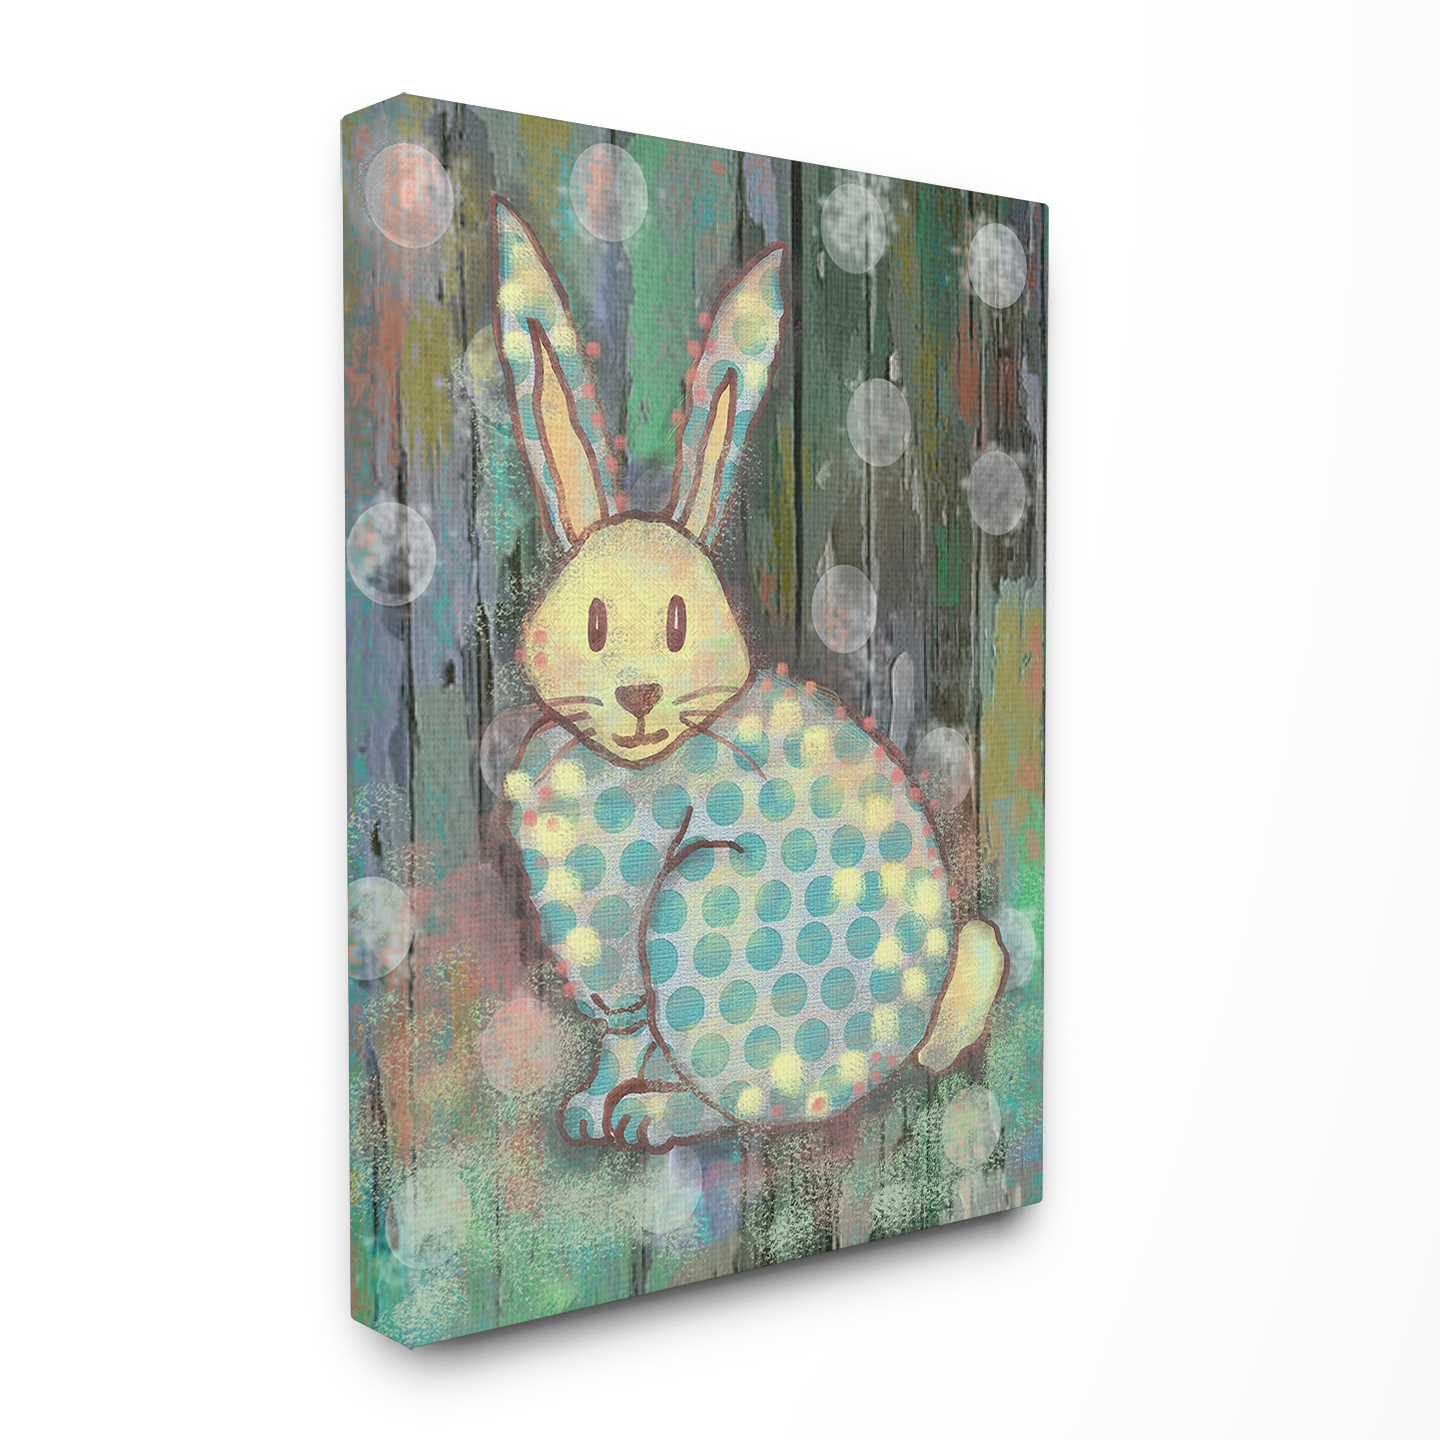 The Kids Room by Stupell Distressed Woodland Rabbit Stretched Canvas Wall Art, 16 x 1.5 x 20